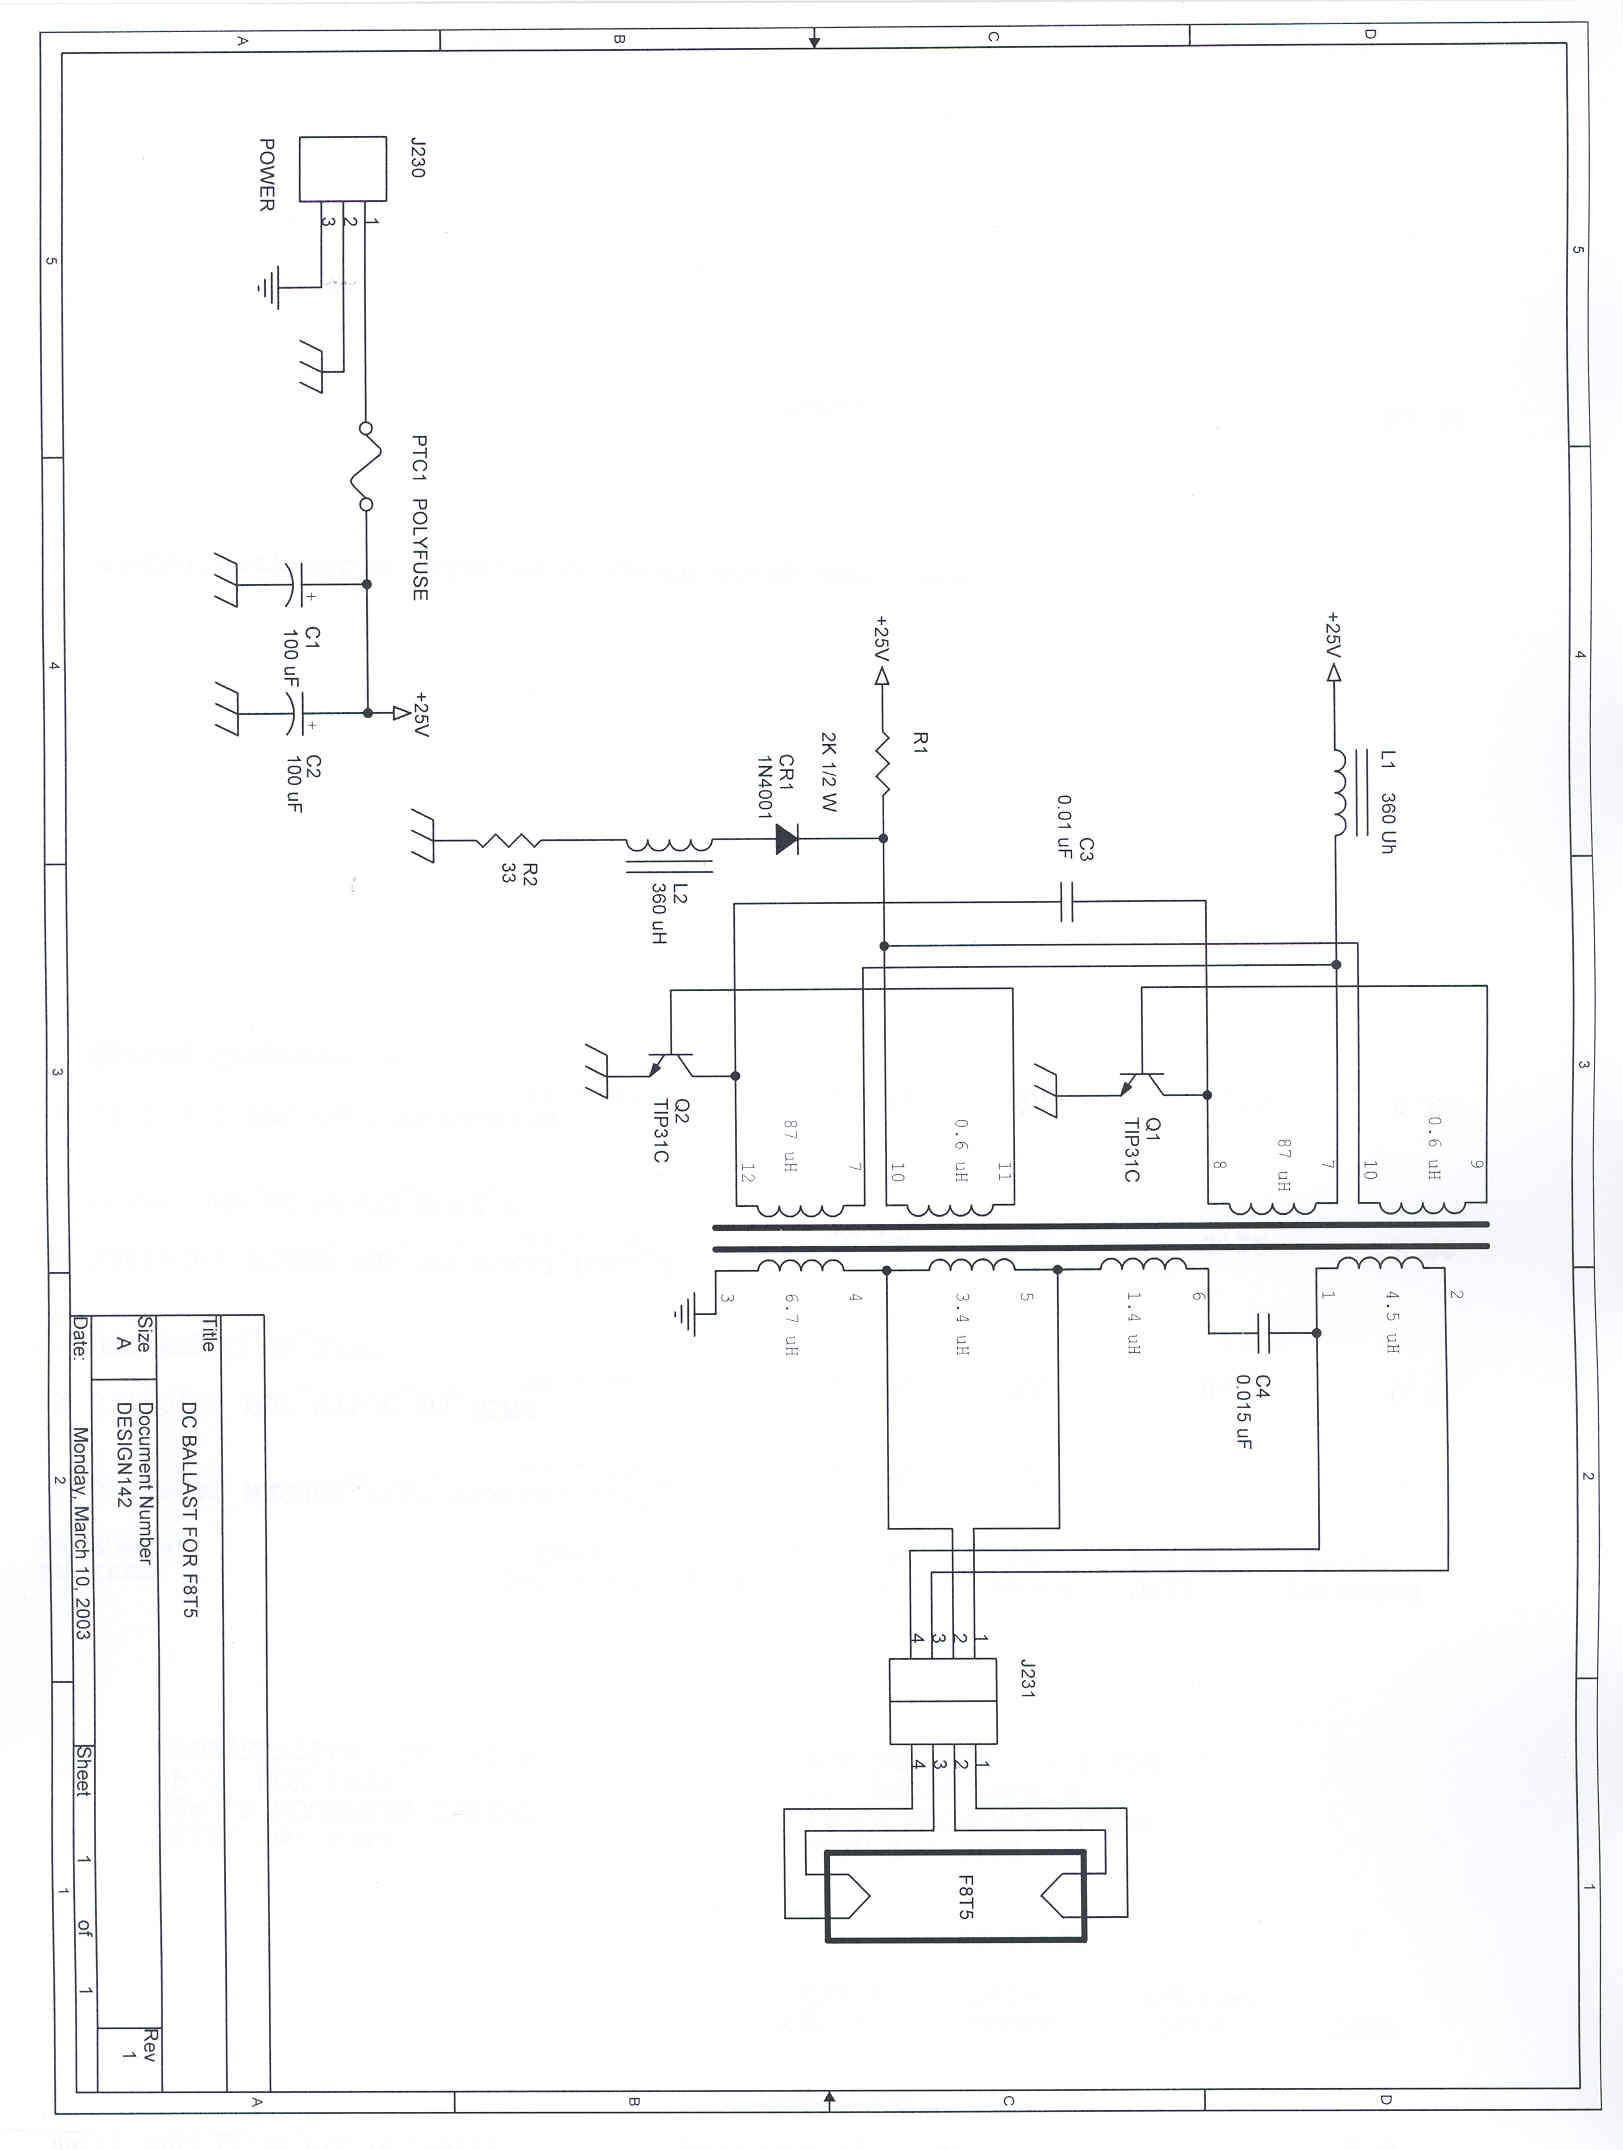 F8t5 Ballast Wiring Diagram : 27 Wiring Diagram Images